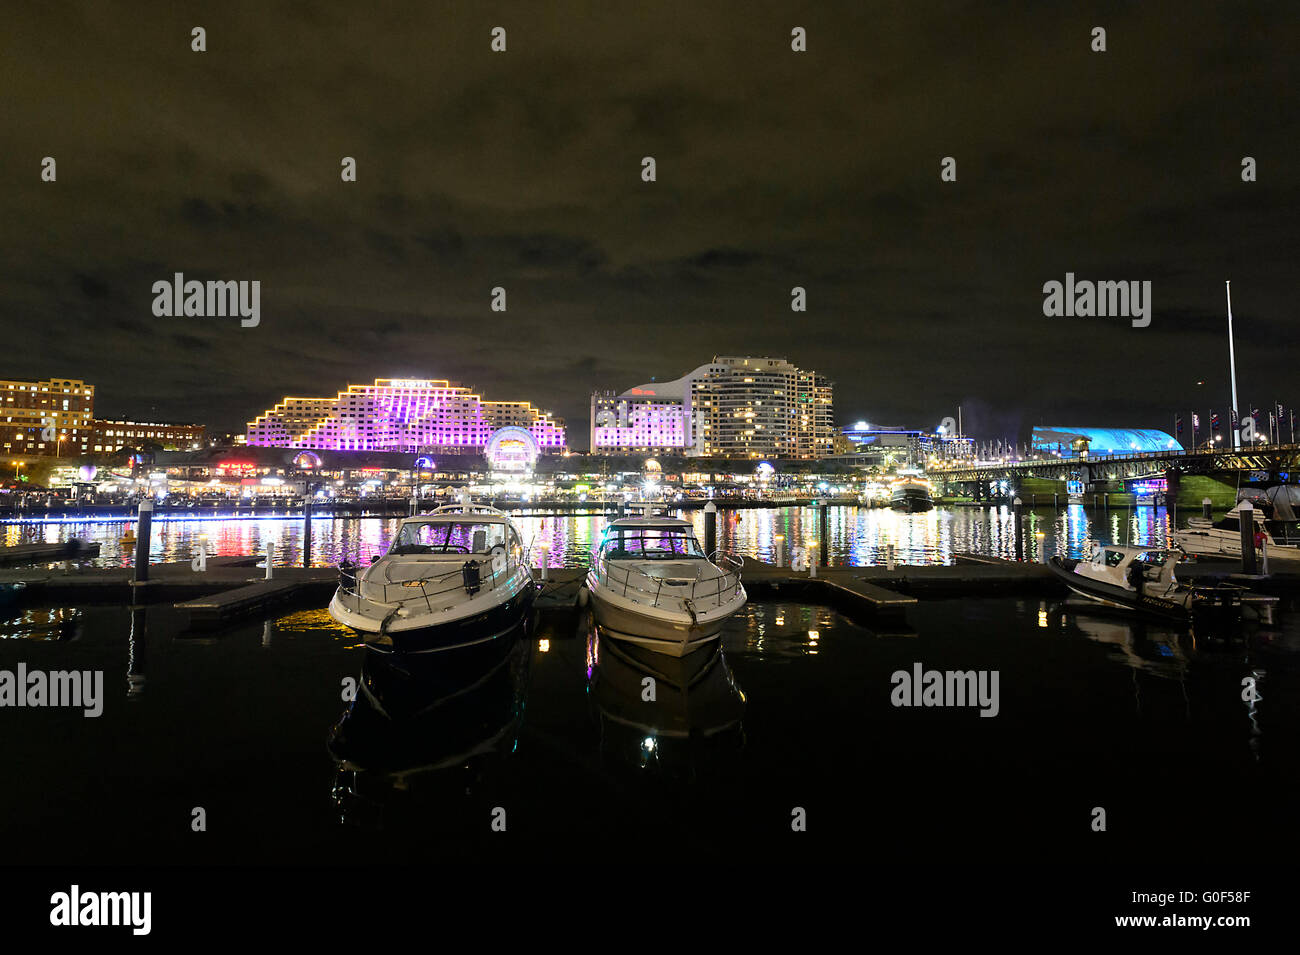 Darling Harbour Marina at night with the Novotel Hotel in the background, Sydney, New South Wales, Australia - Stock Image